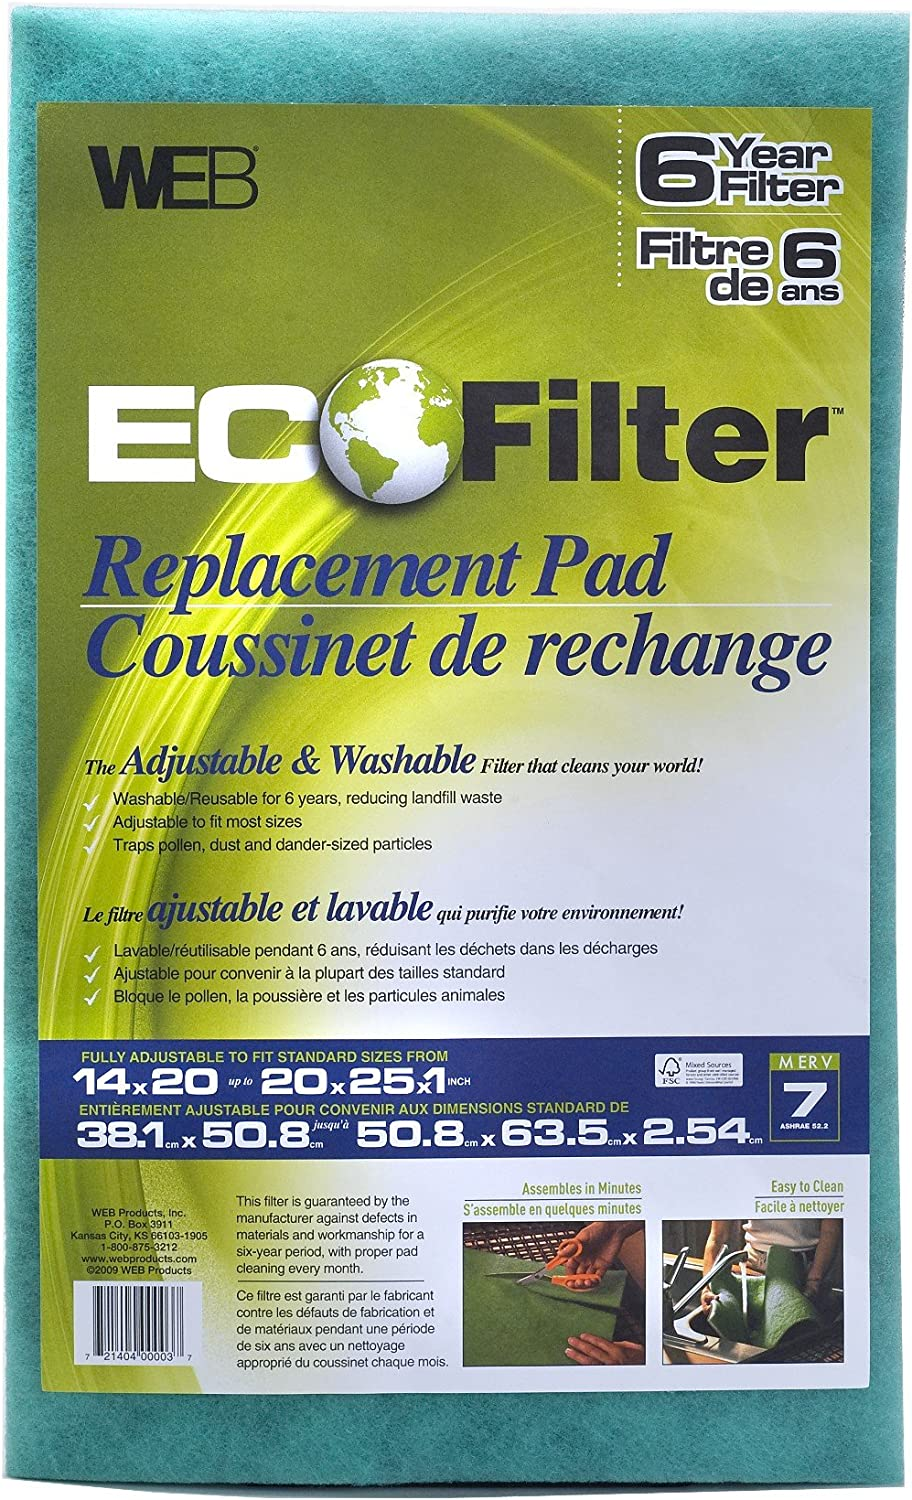 WEB Eco Filter Replacement Pad, 6 Year